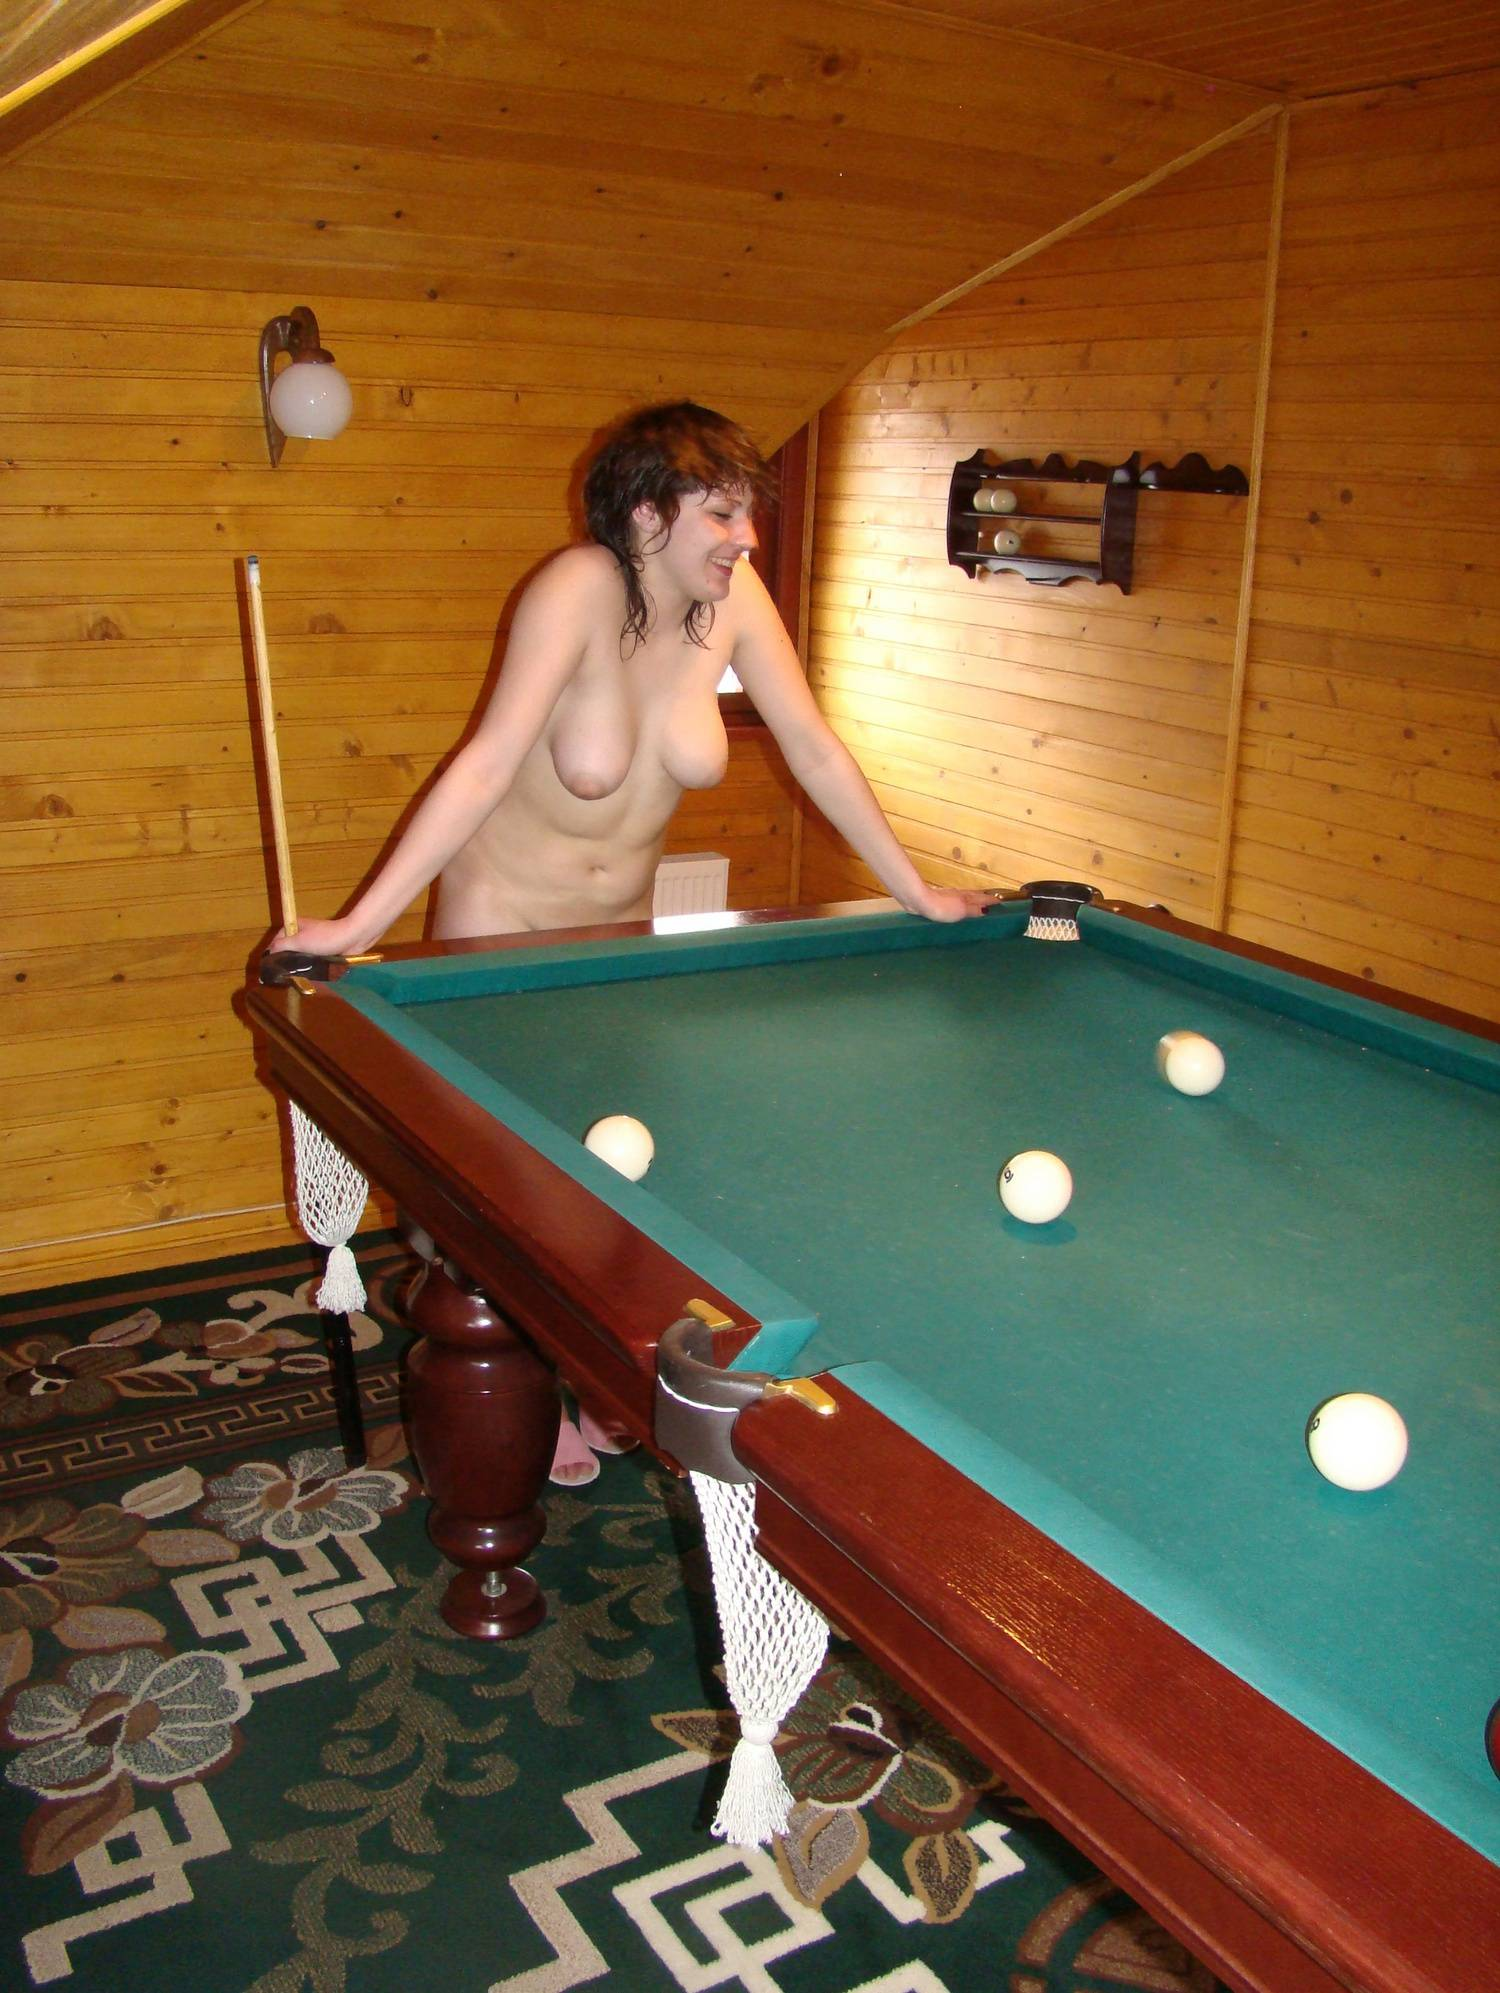 Naturist Girls Pool Gaming - 2